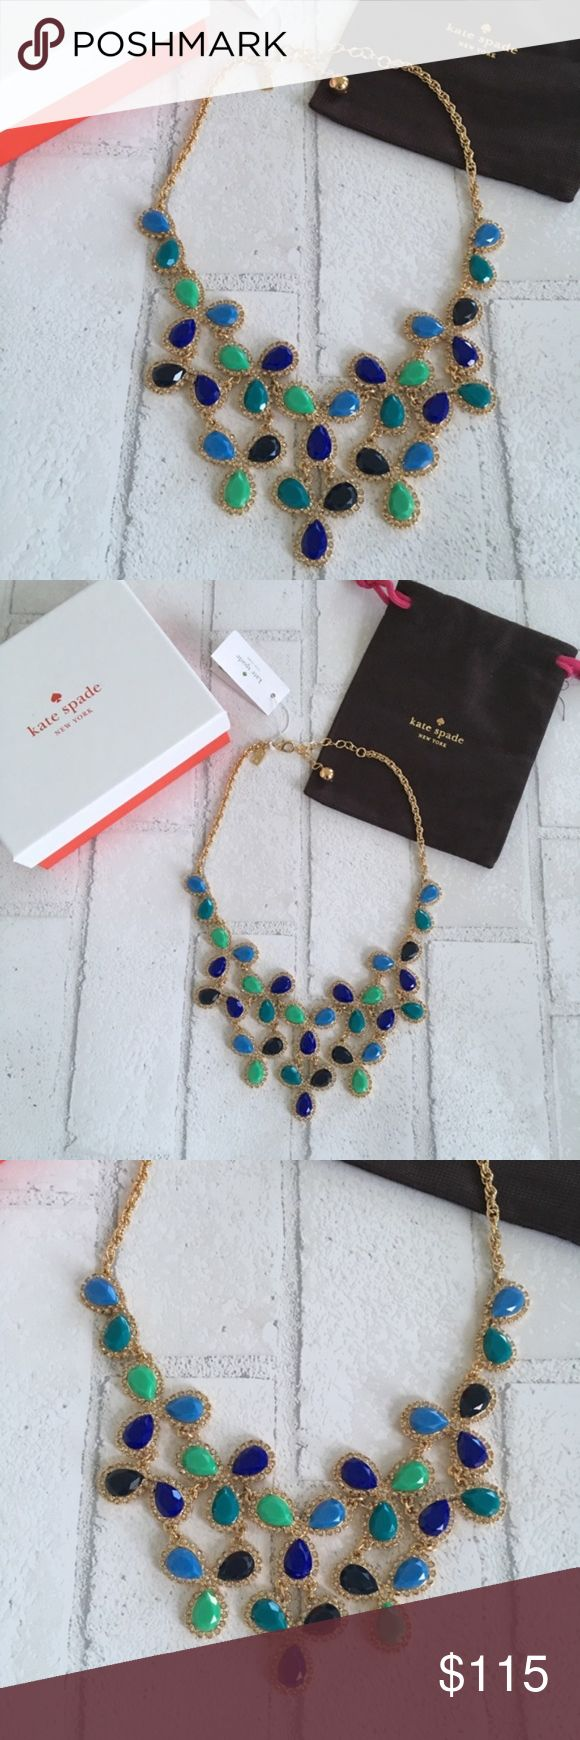 """Kate Spade Ballon Bouquet Blue & Gold Necklace Balloon Bouquet Statement Necklace Blue  17""""L with 3"""" extension Lobster clasp closure 2.5"""" frontal drop 14k gold-plated metal/resin/glass Authentic/Box & Dust Bag included.  No Trades Price is Firm unless Bundled.  2+ Items 10% Off 3+ Items 15% Off. kate spade Jewelry Necklaces"""